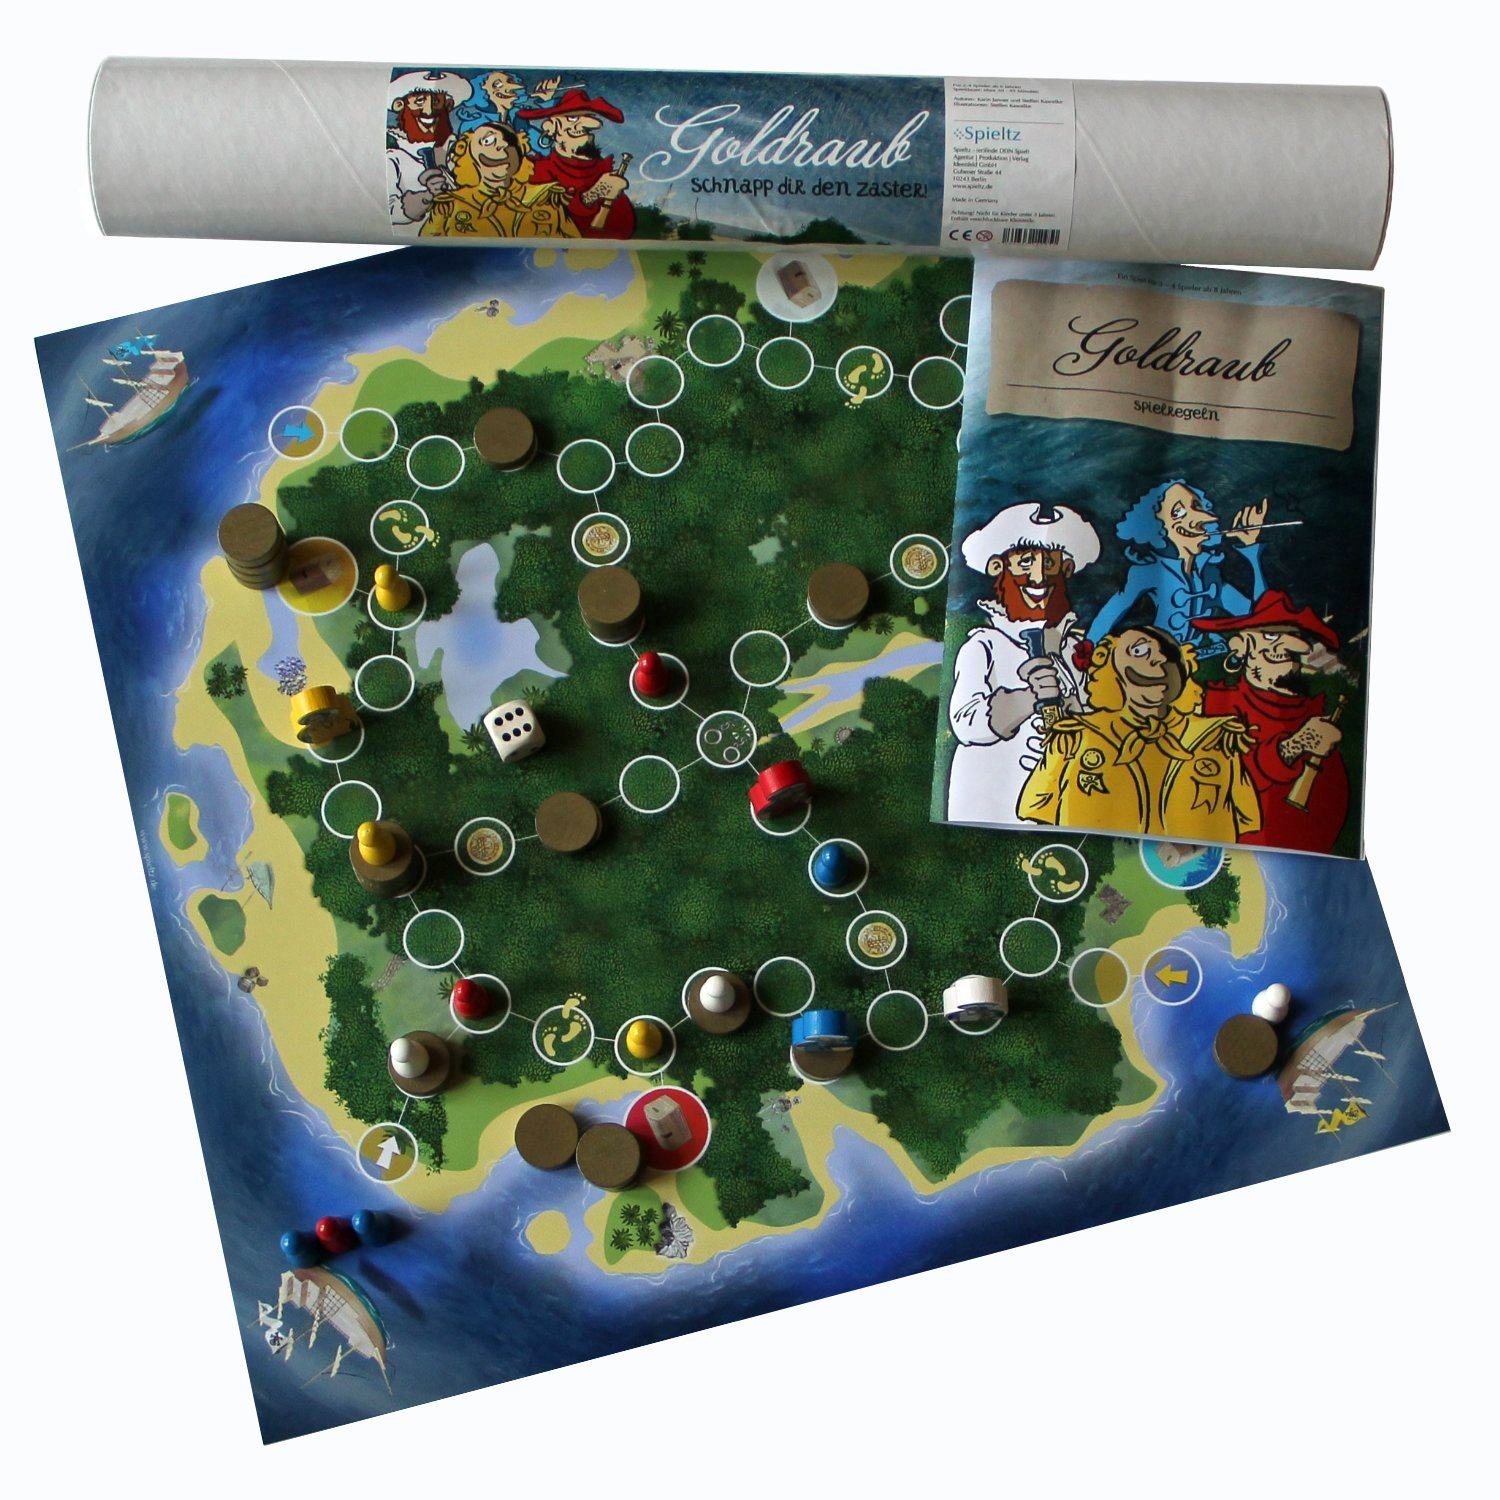 piraten brettspiel goldraub spieltz